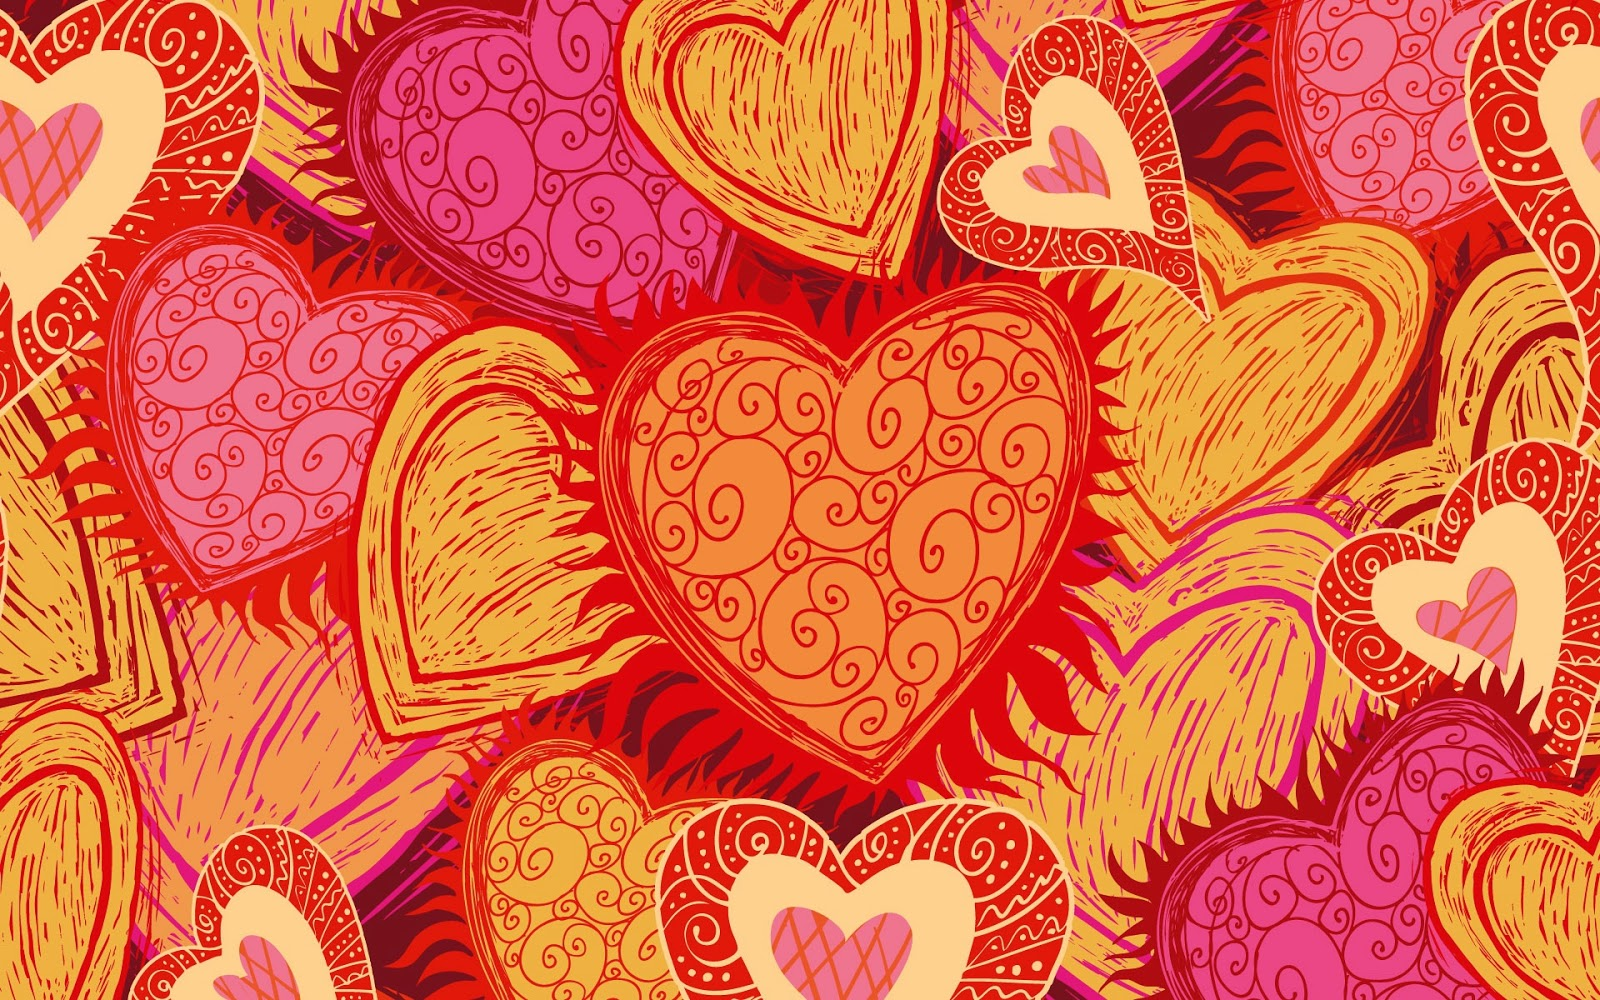 Hearts Wallpapers, part 3